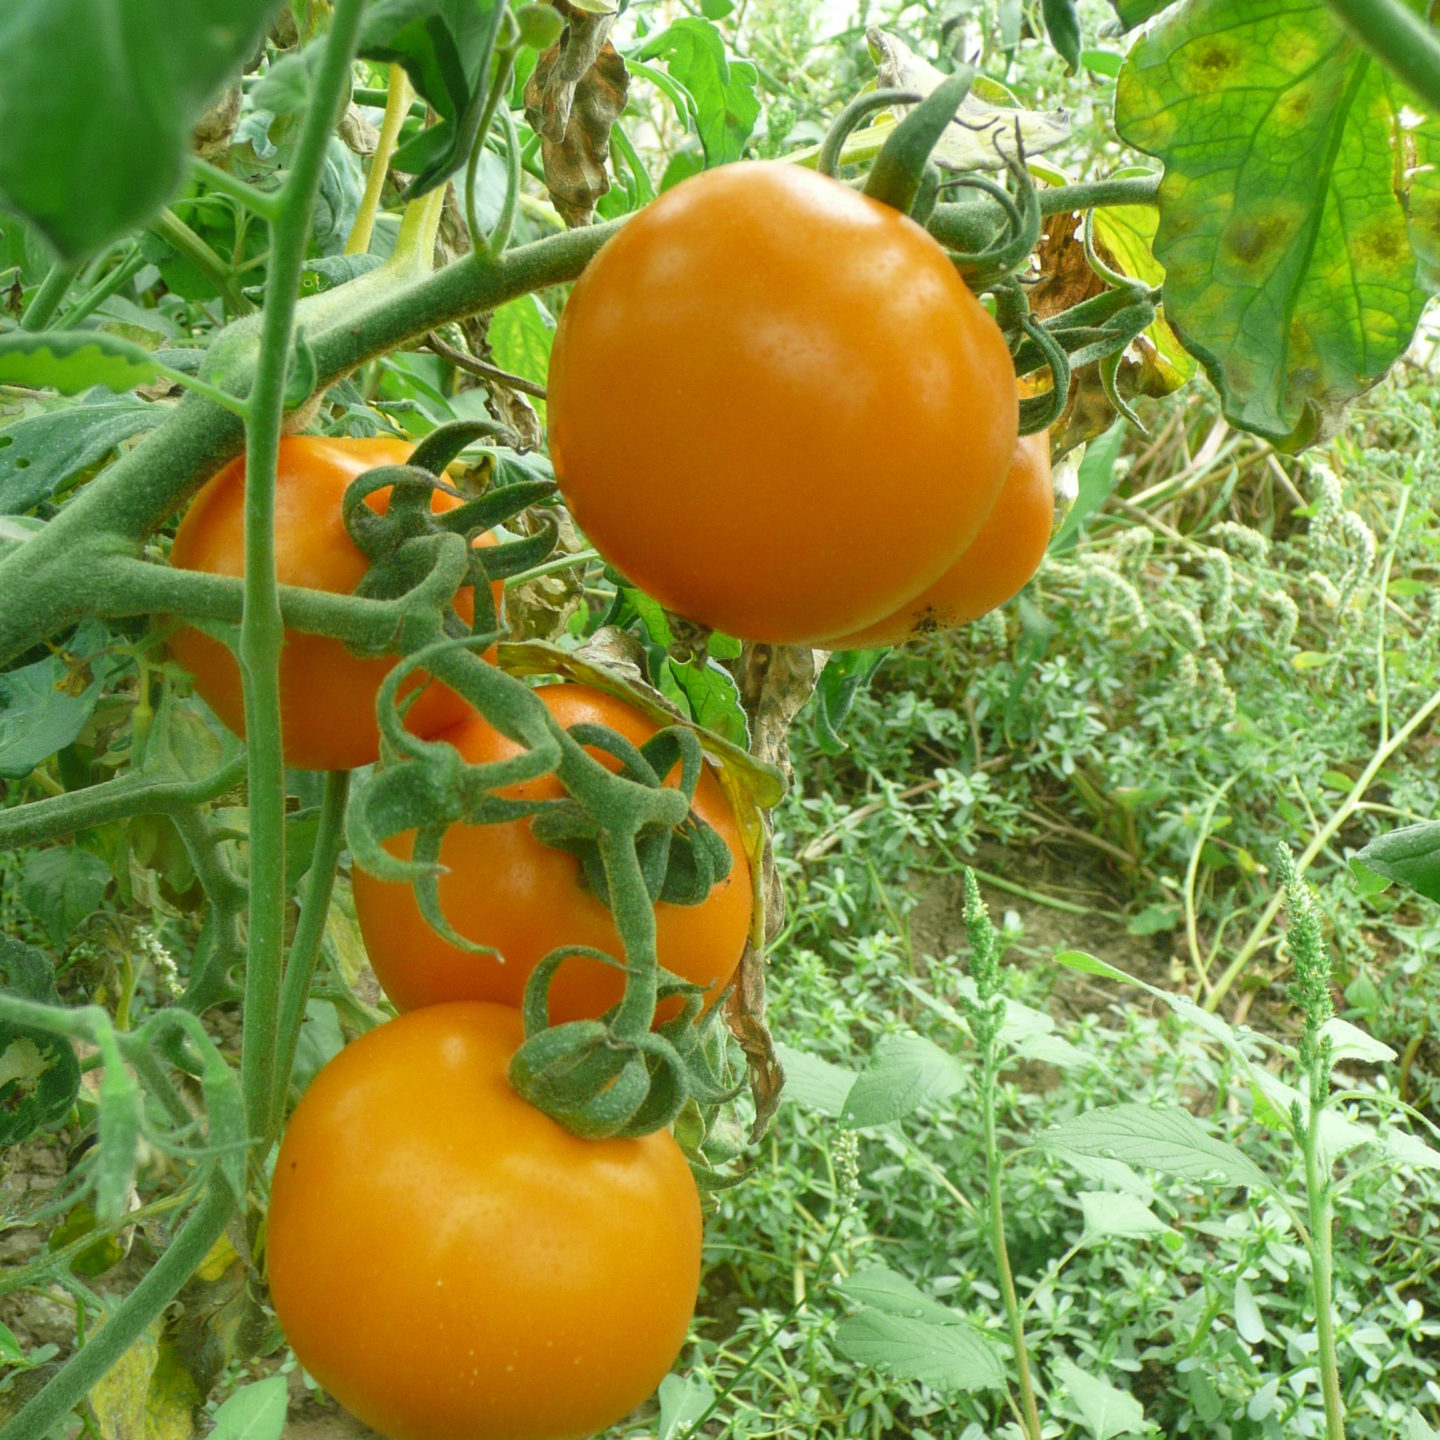 Bulgarian tomato with high content of beta-carotene extremely suitable for organic farming